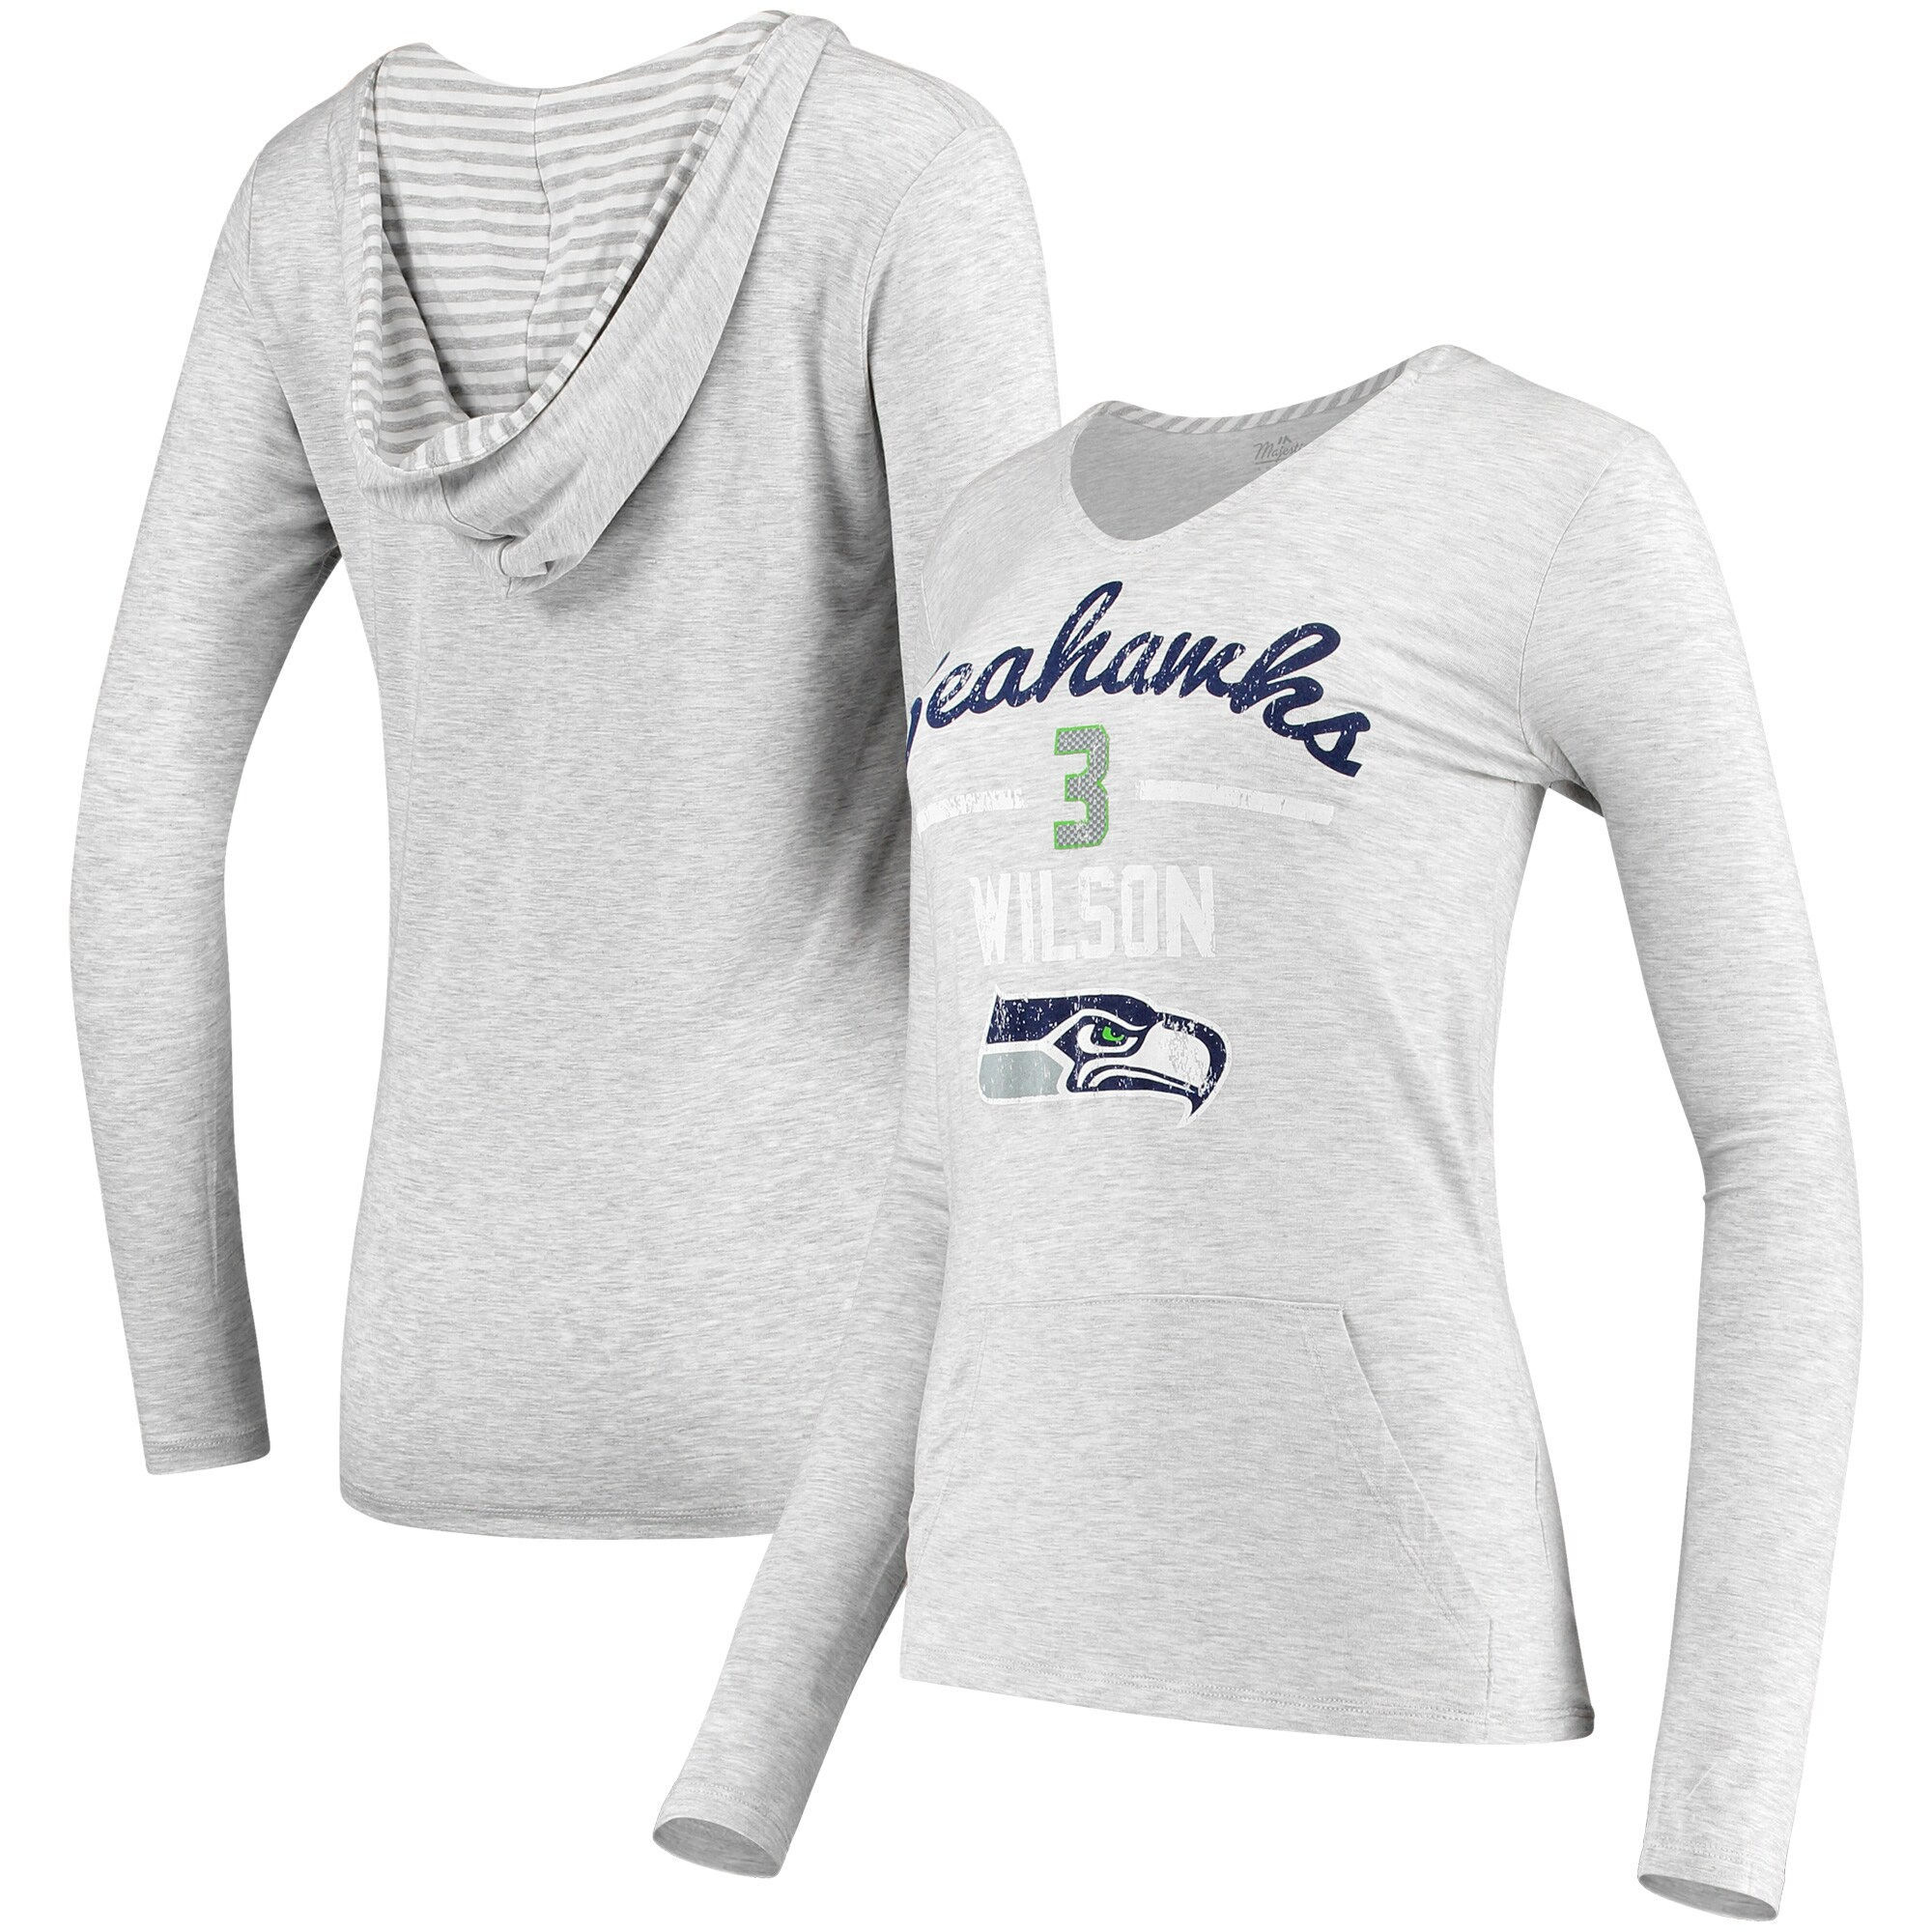 Russell Wilson Seattle Seahawks Women's Pocket Name & Number Hoodie T-Shirt - Gray